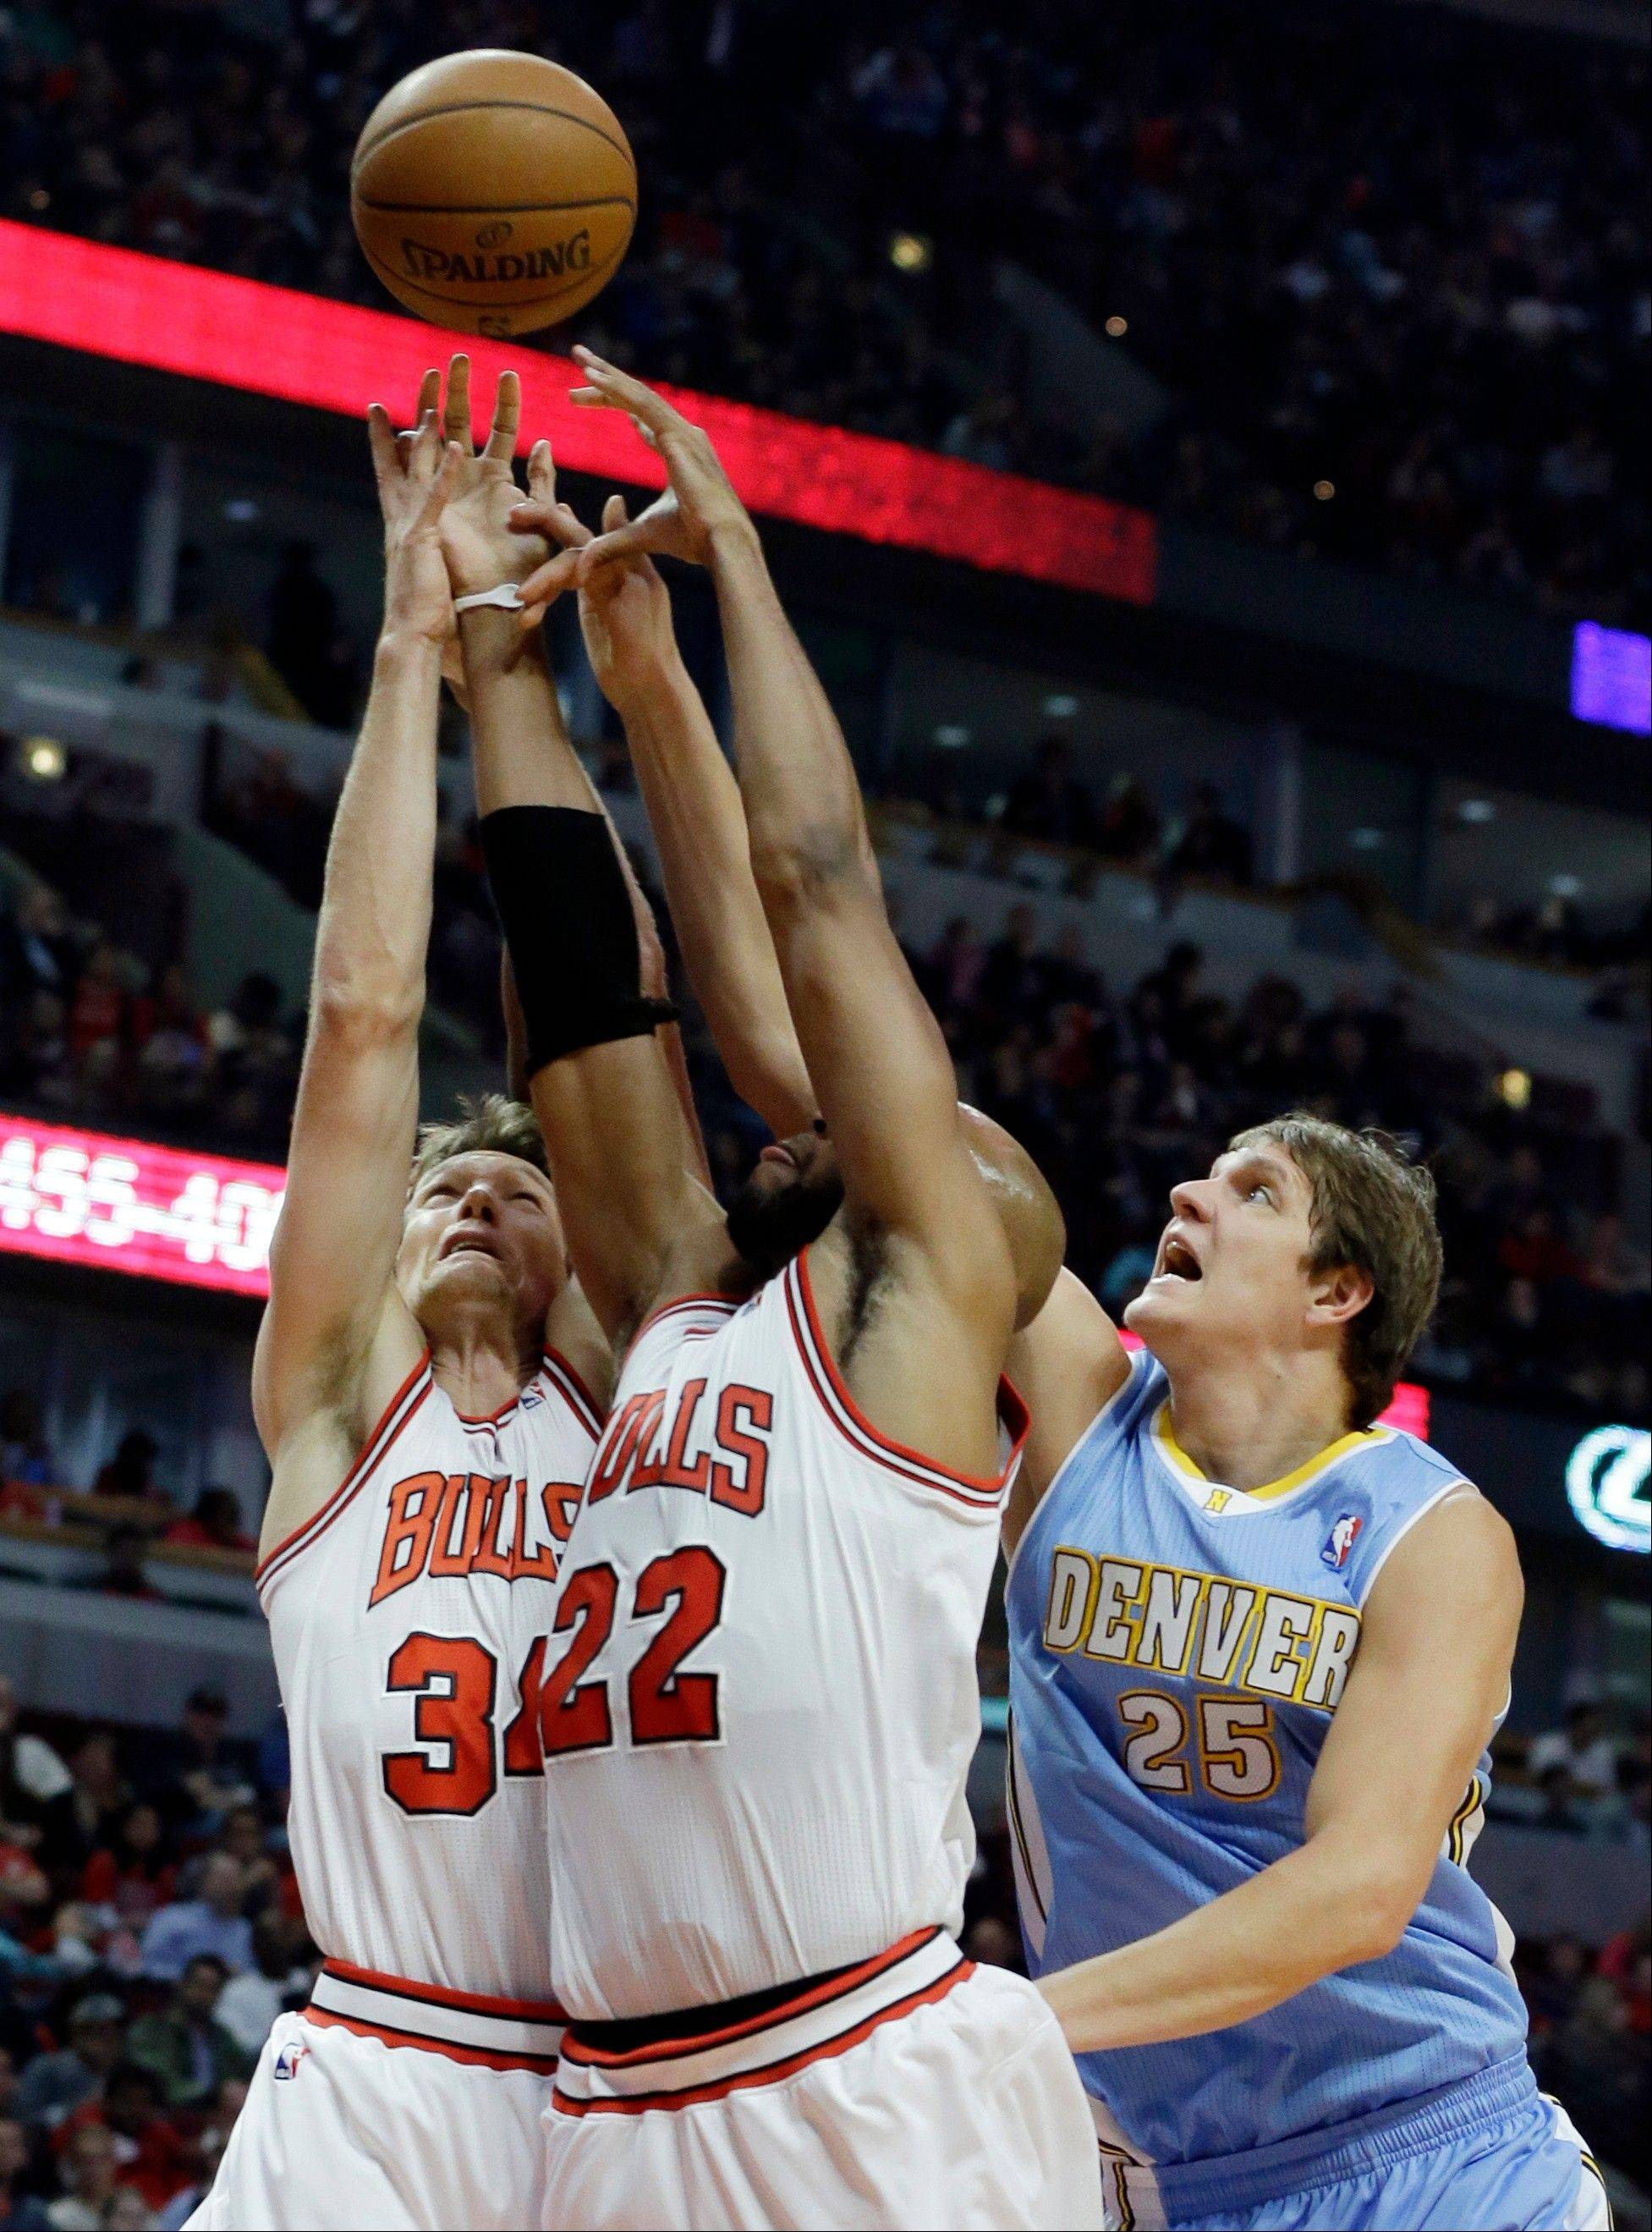 Denver Nuggets center Timofey Mozgov (25) battle for a rebound against Chicago Bulls guard Mike Dunleavy, left, and Taj Gibson during the first half of an NBA preseason basketball game in Chicago on Friday, Oct. 25, 2013.